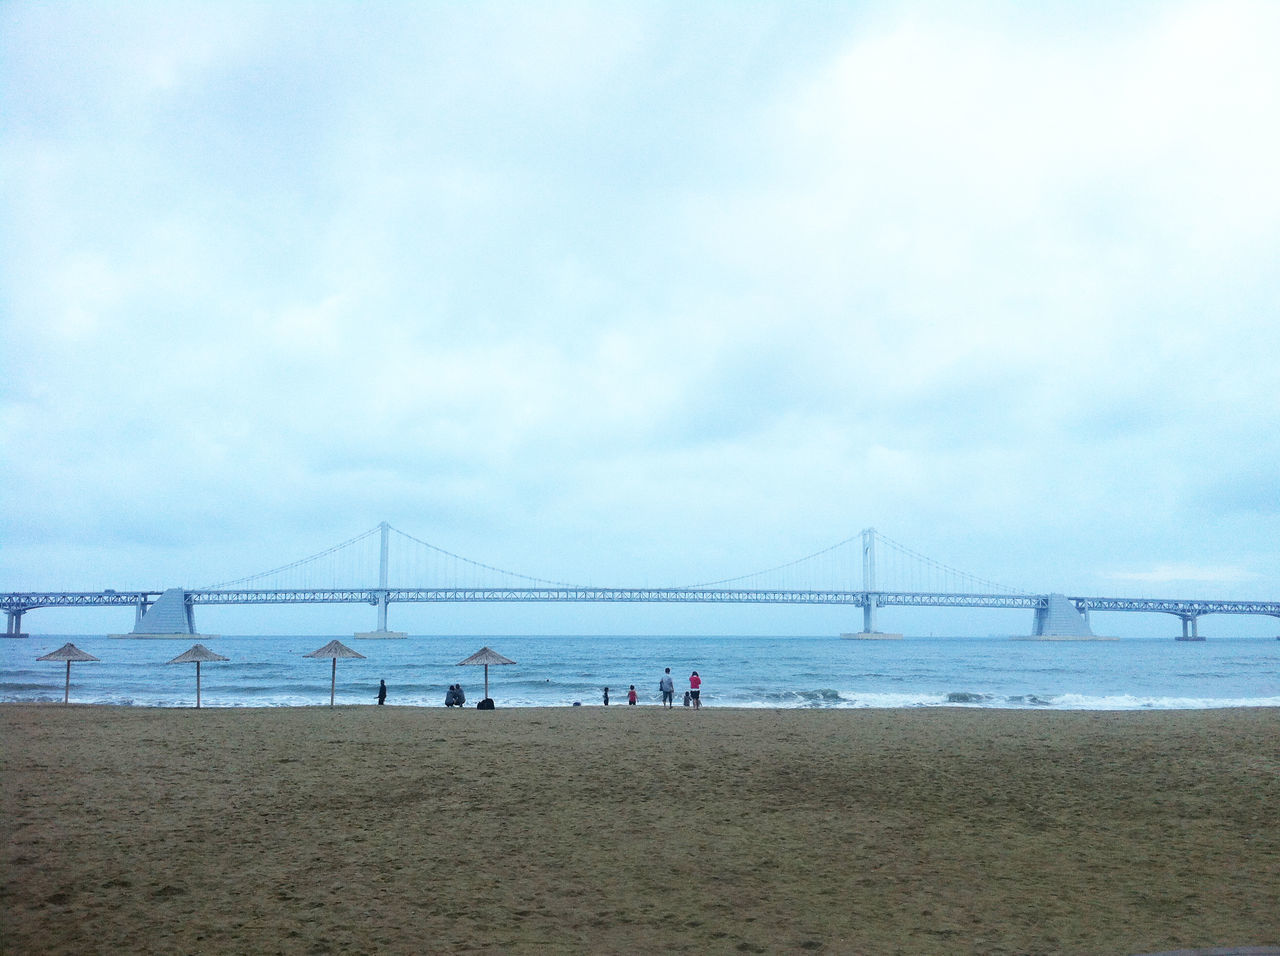 Korea Busan Gwangan Bridge Gwanganli Scenery Beach People Of The Oceans